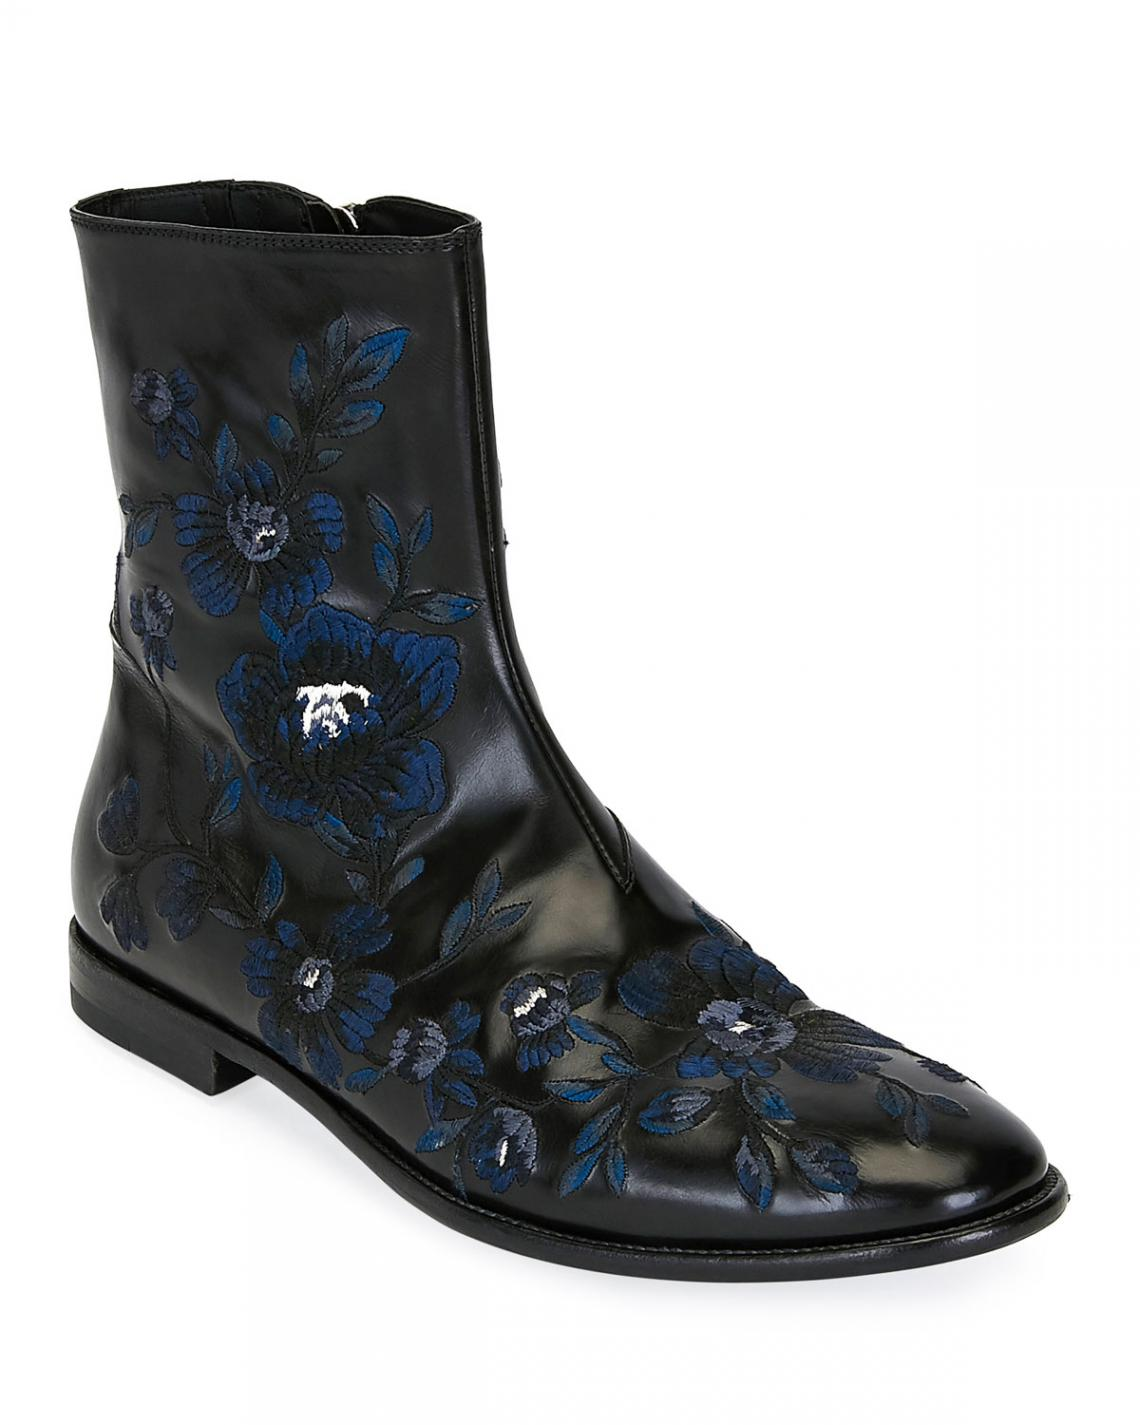 Alexander Boots | Mens Embroidered Leather Half-Boot Black